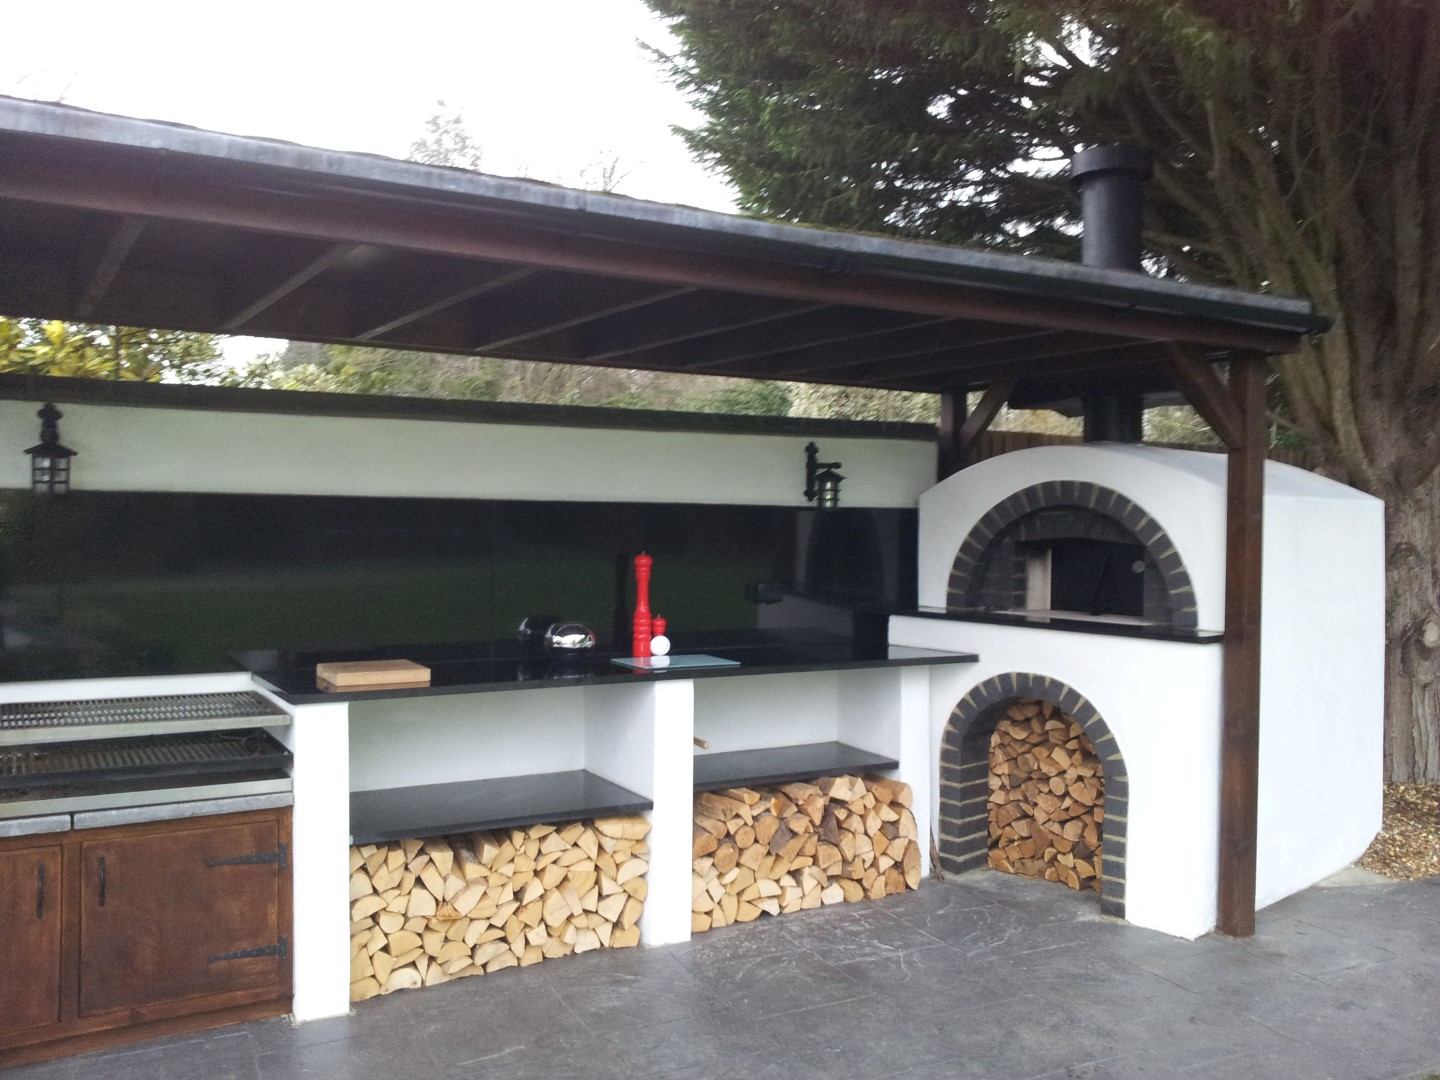 The Outdoor Oven U2013 Finished!